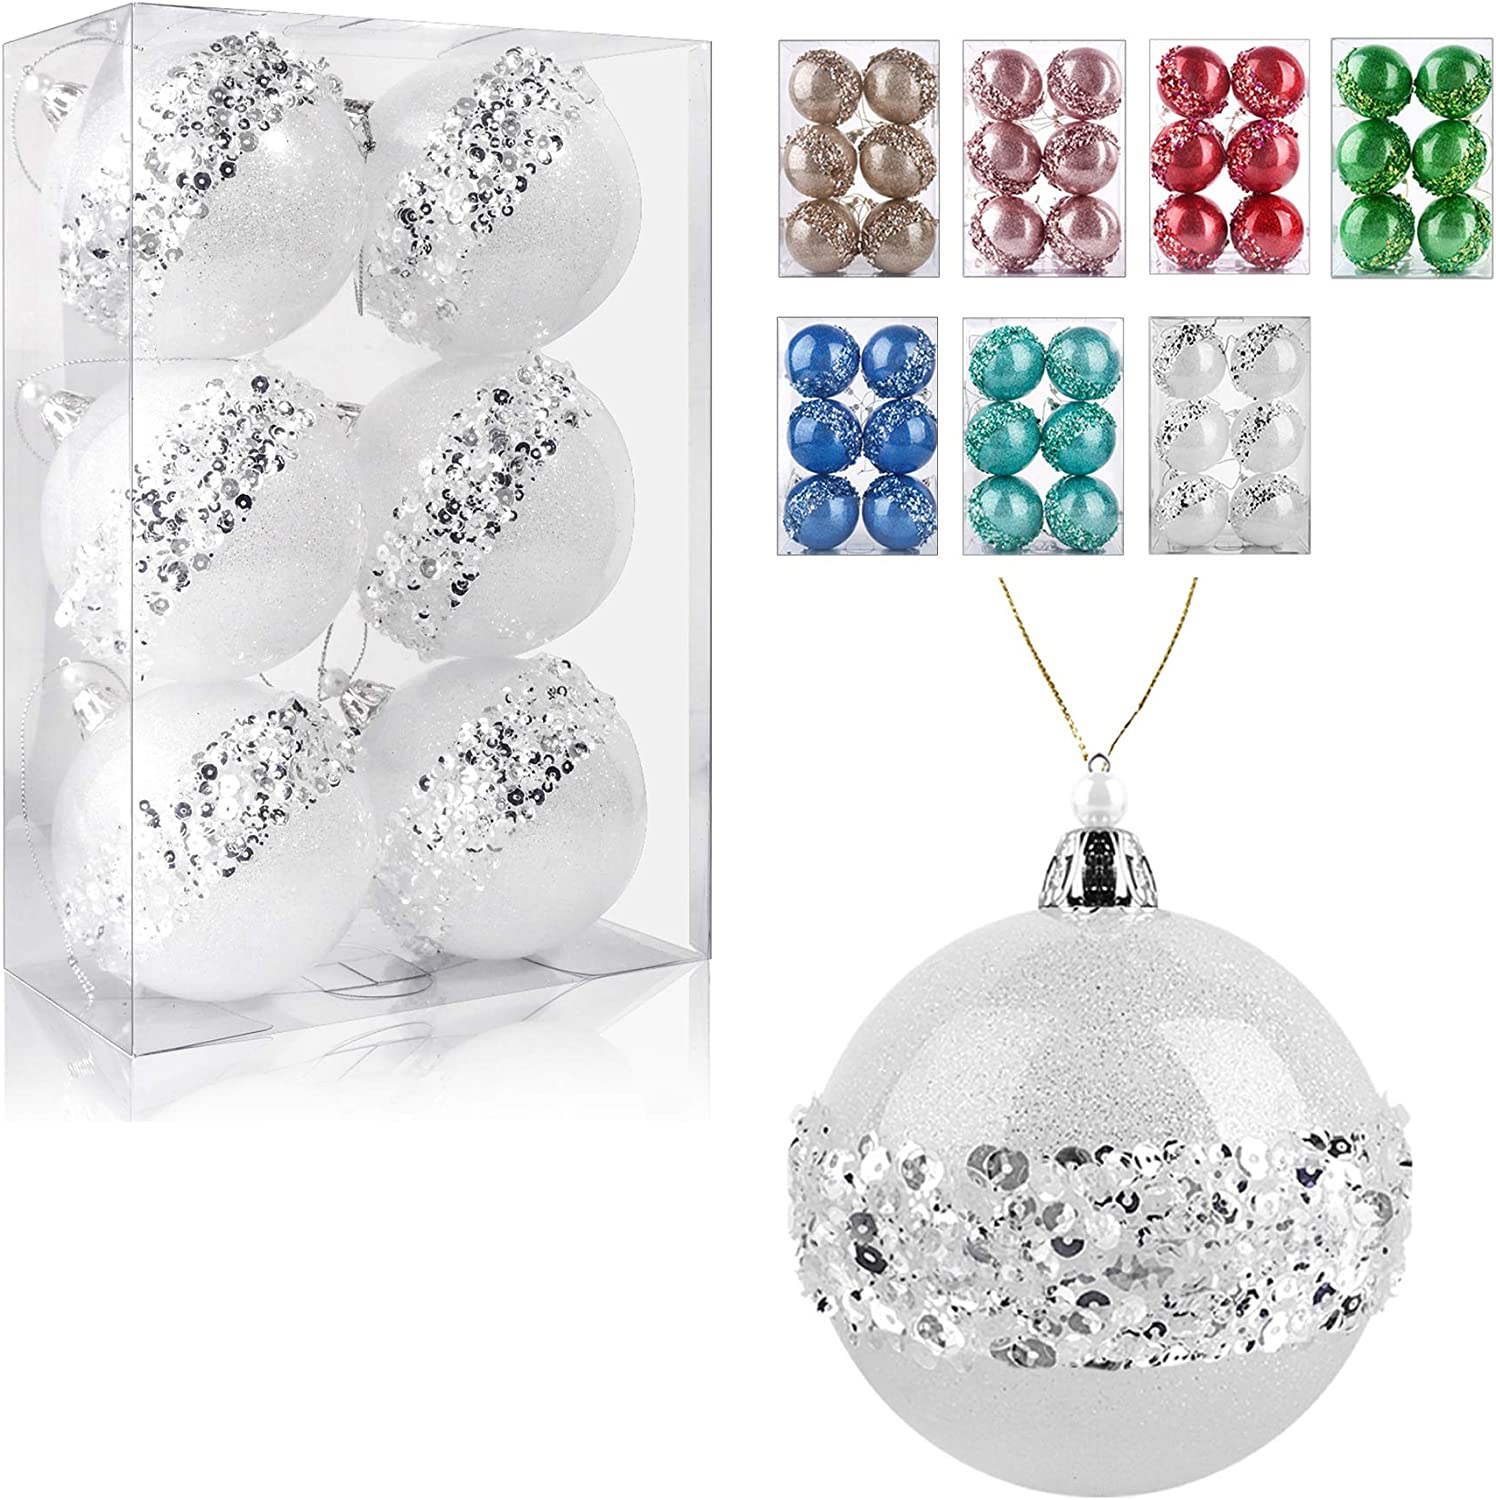 3.15Inch Clear Ornaments Balls,6pc Set White Christmas Ball Decorations Ornaments Perfect Party Decorations Craft Transparent Ball Gifts for Wedding Party Decor (White)